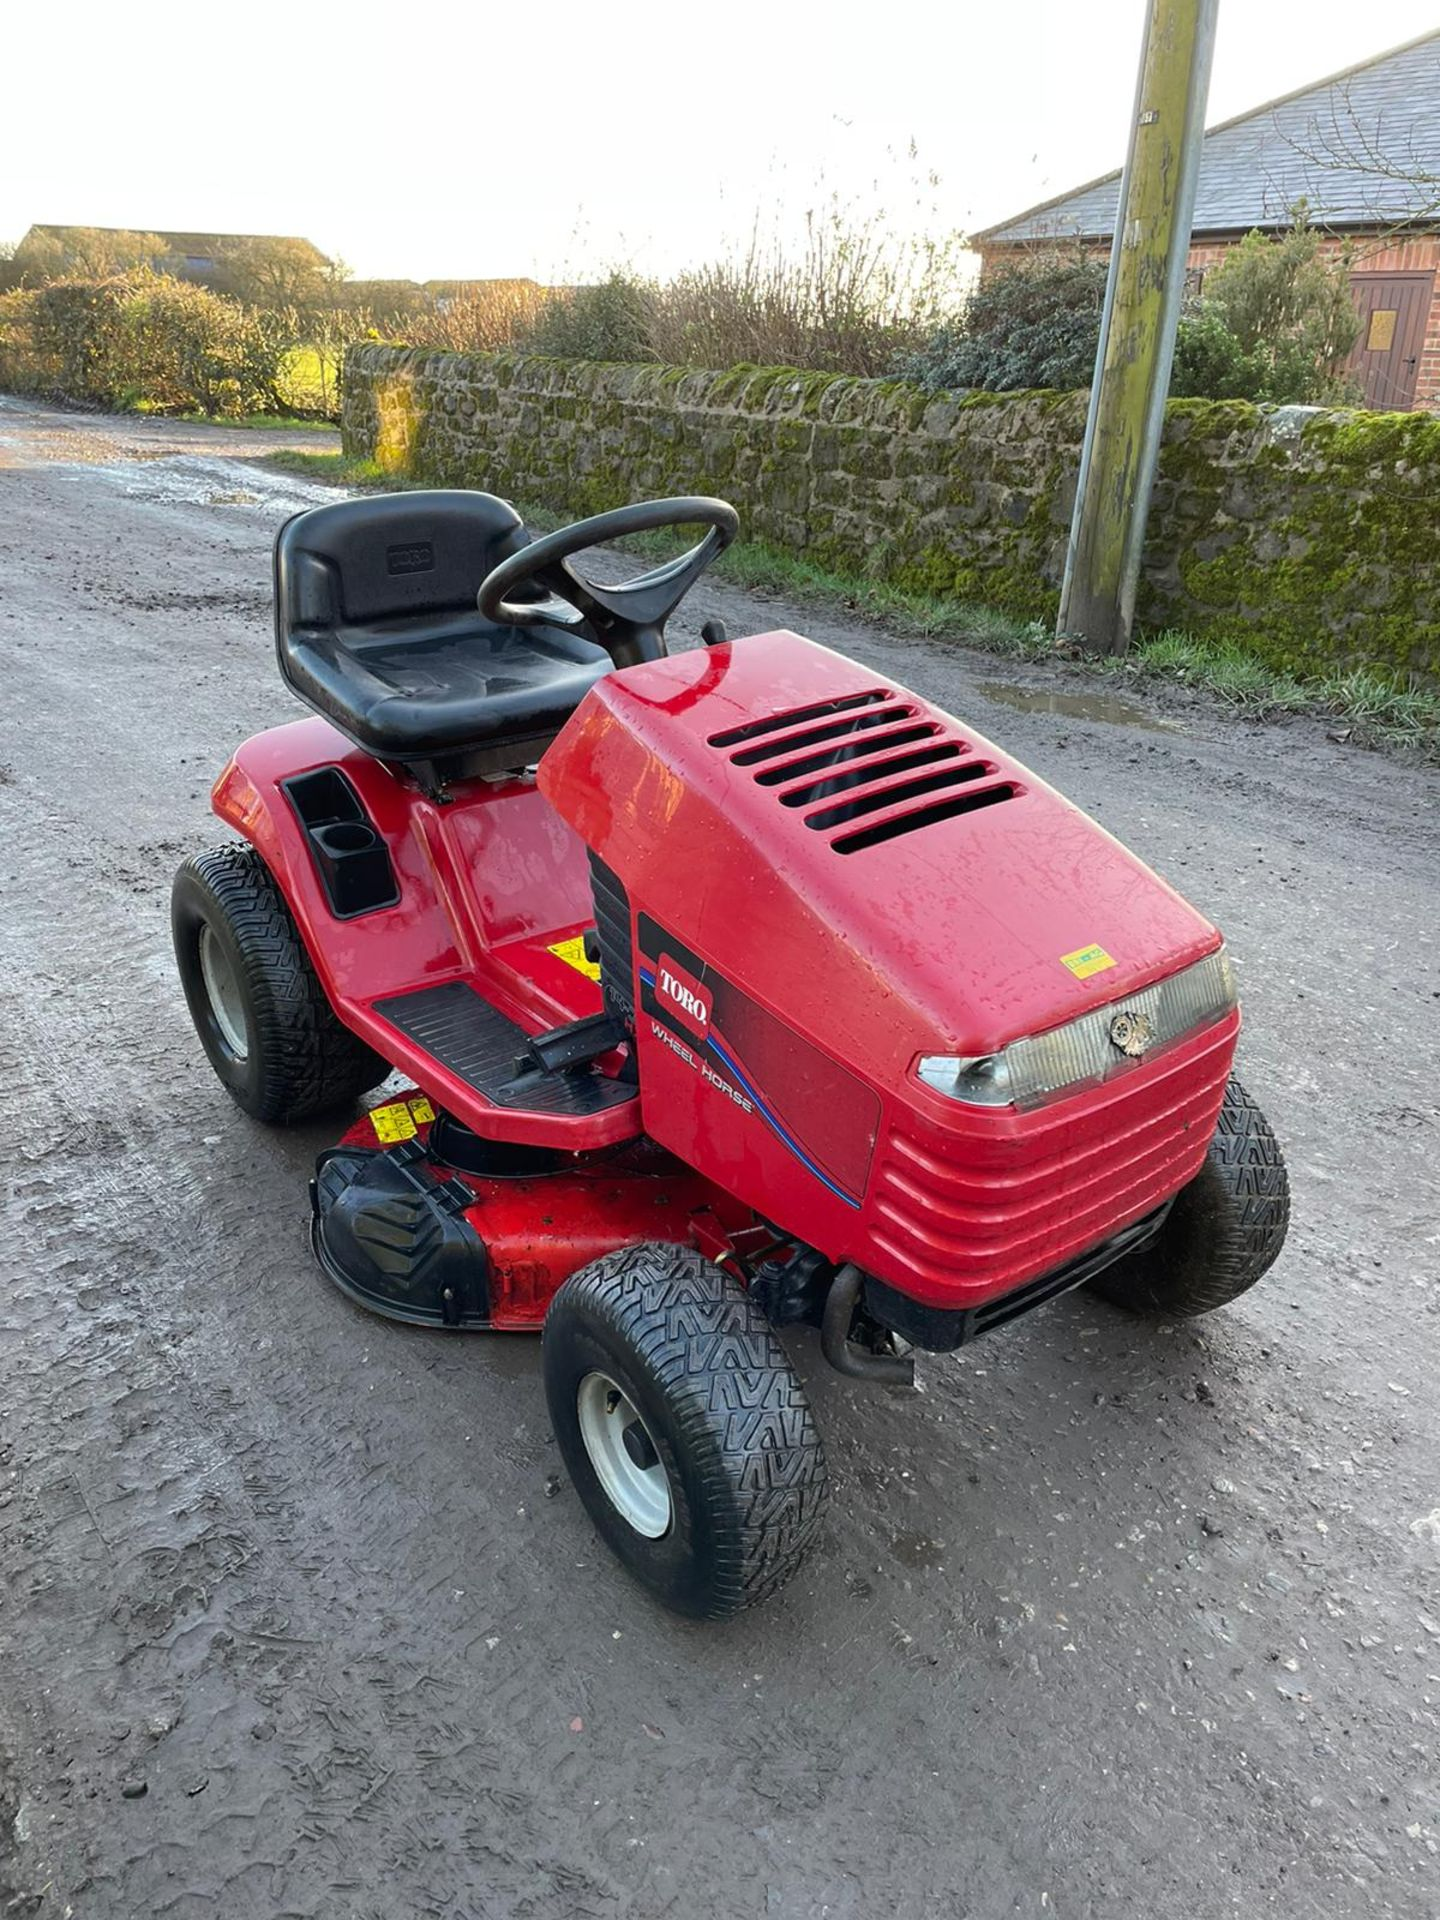 TORO 14-38 HXL RIDE ON MOWER, RUNS, DRIVES AND CUTS, CLEAN MACHINE *NO VAT* - Image 2 of 6